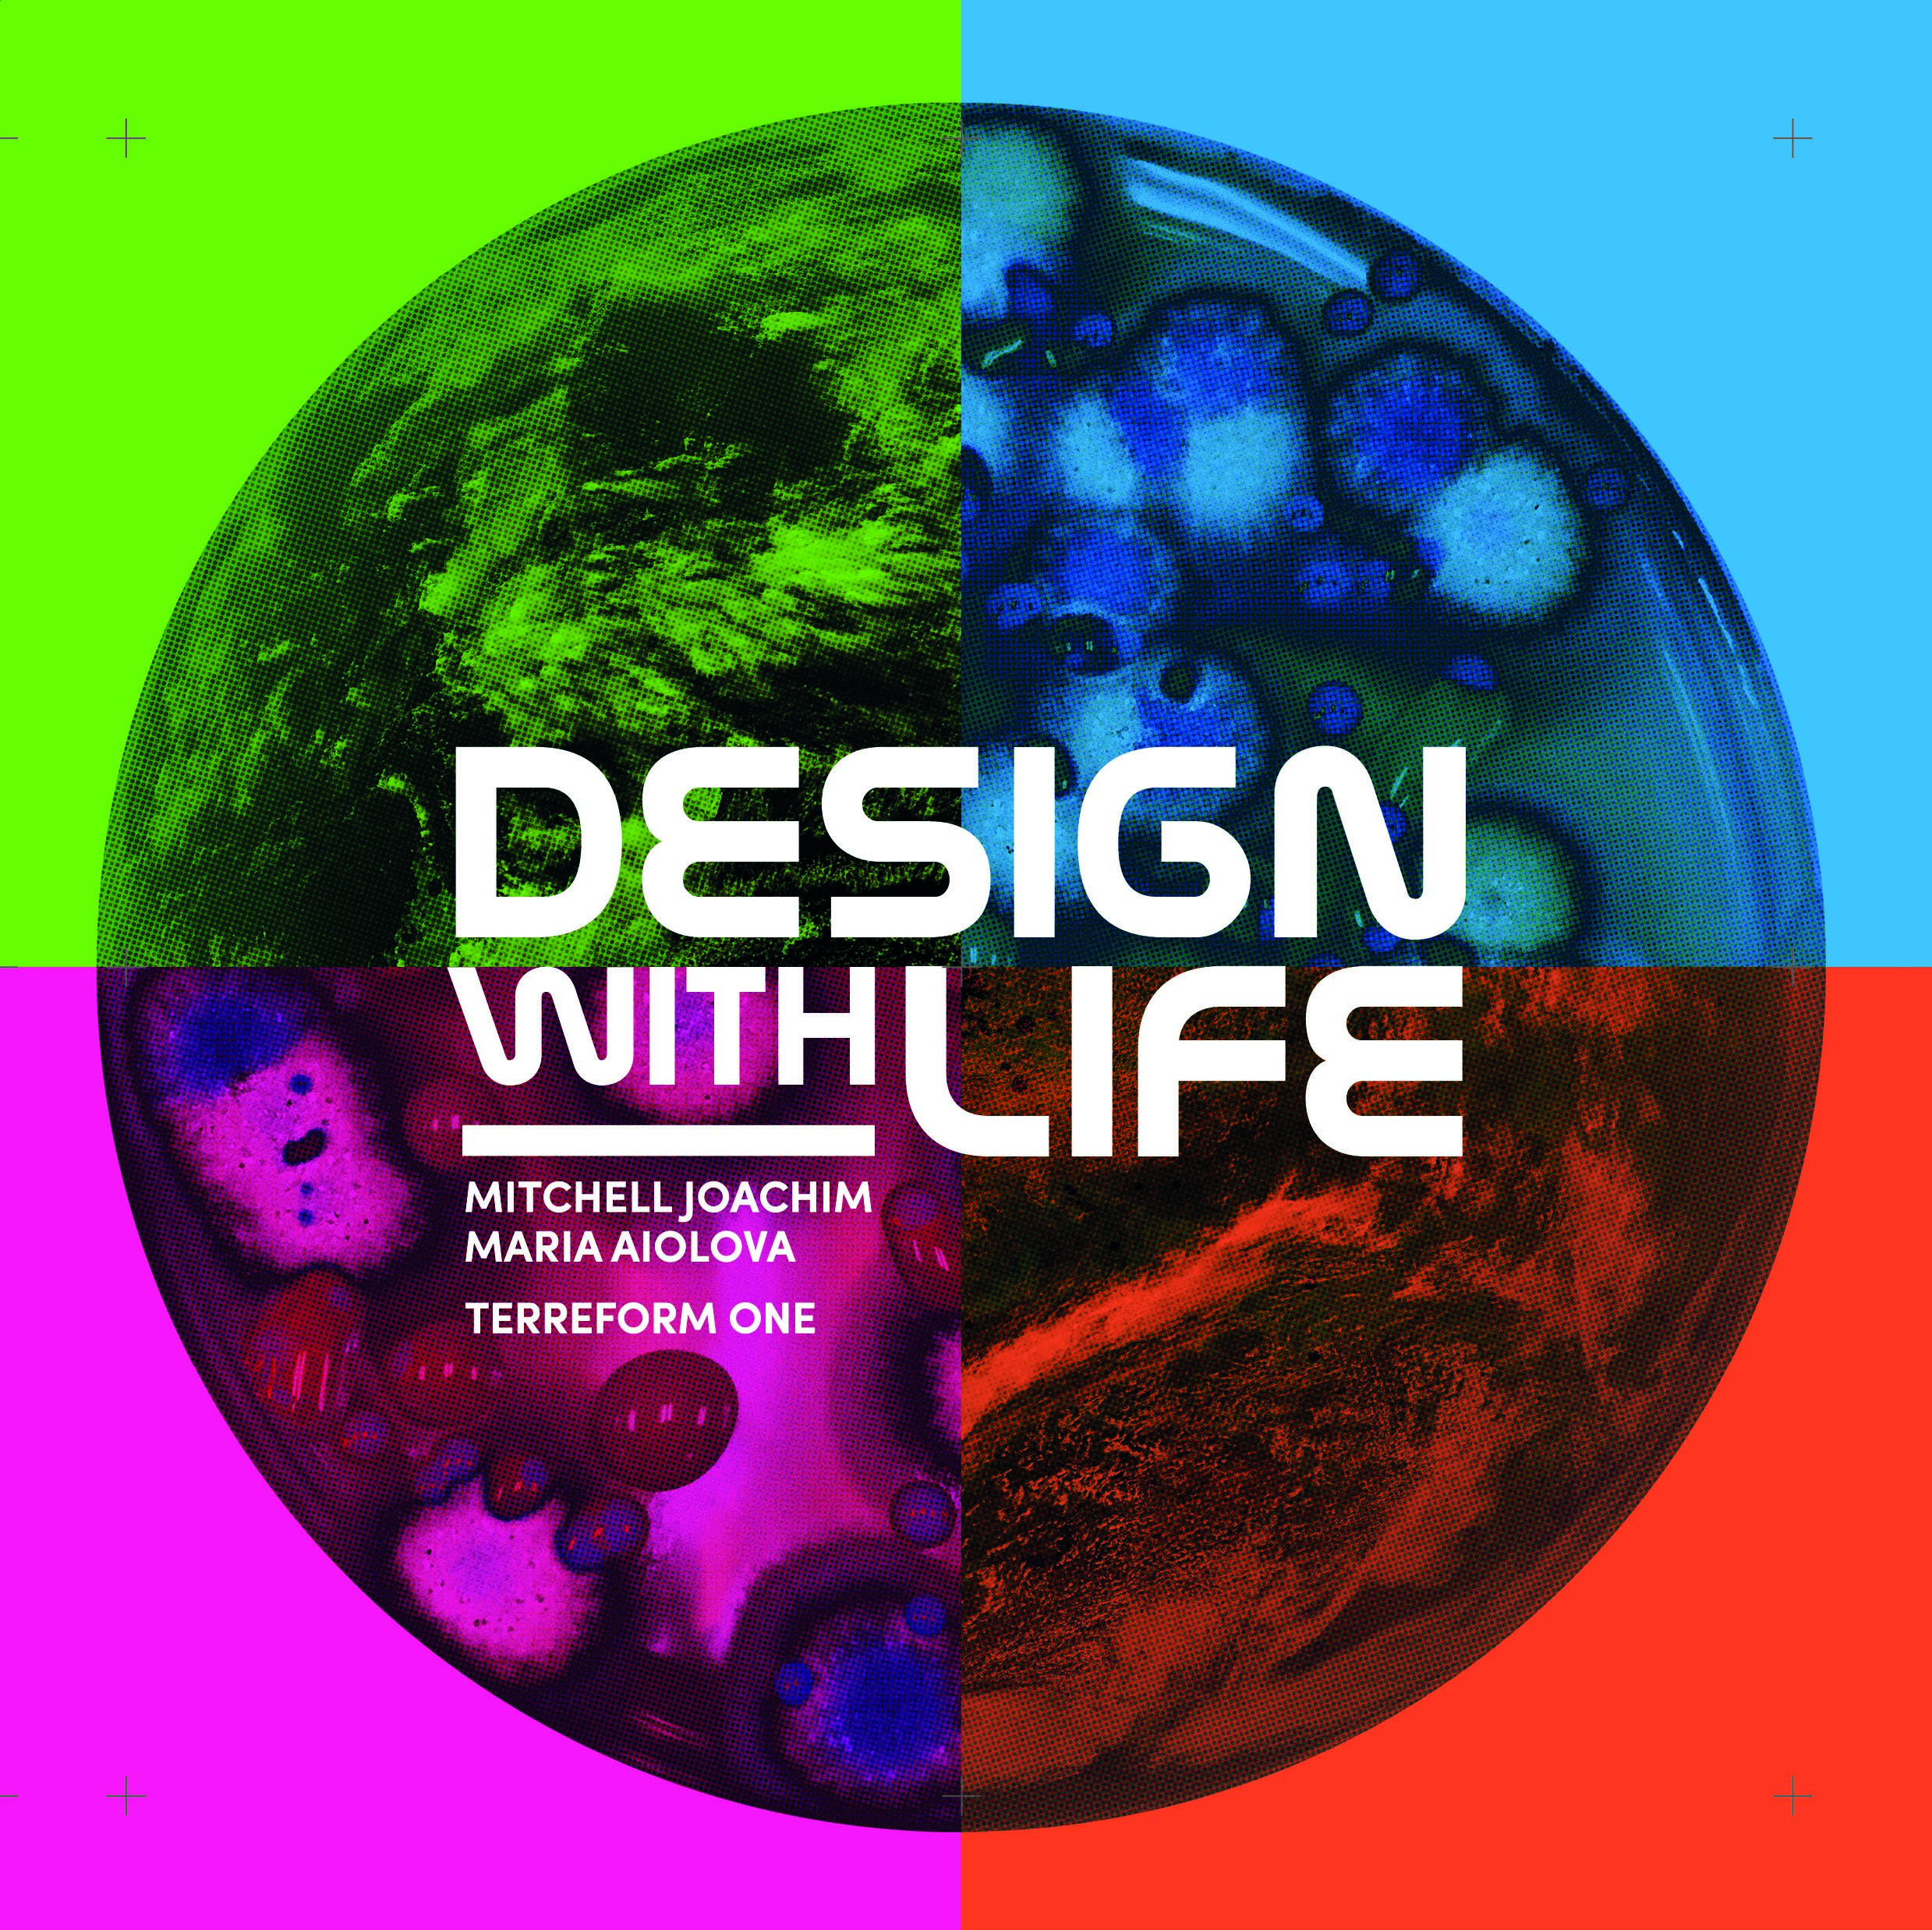 Design with Life: Biotech Architecture and Resilient Cities by Mitchell Joachim, Maria Aiolova, Terreform ONE, ACTAR 2019